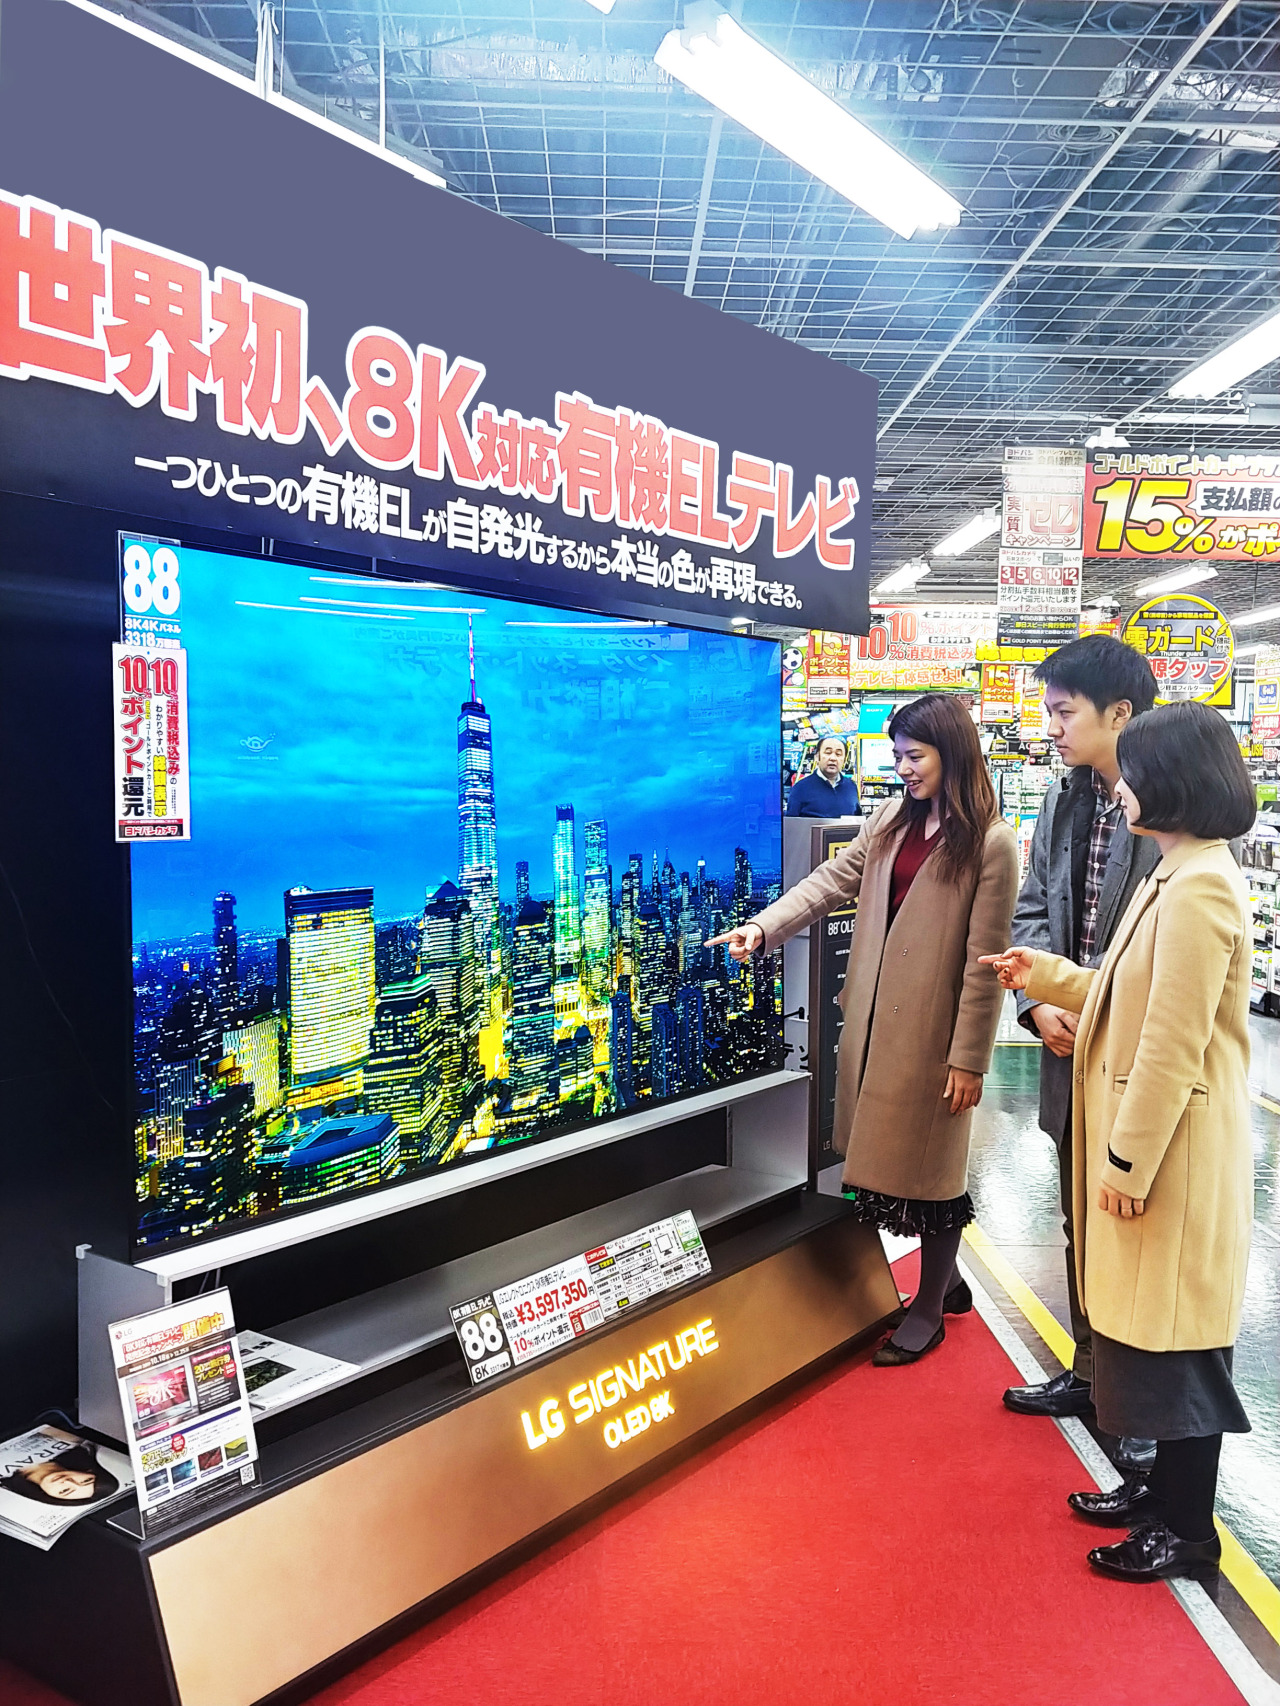 LG rolls out 8K OLED TV in Japan ahead of Tokyo Olympics